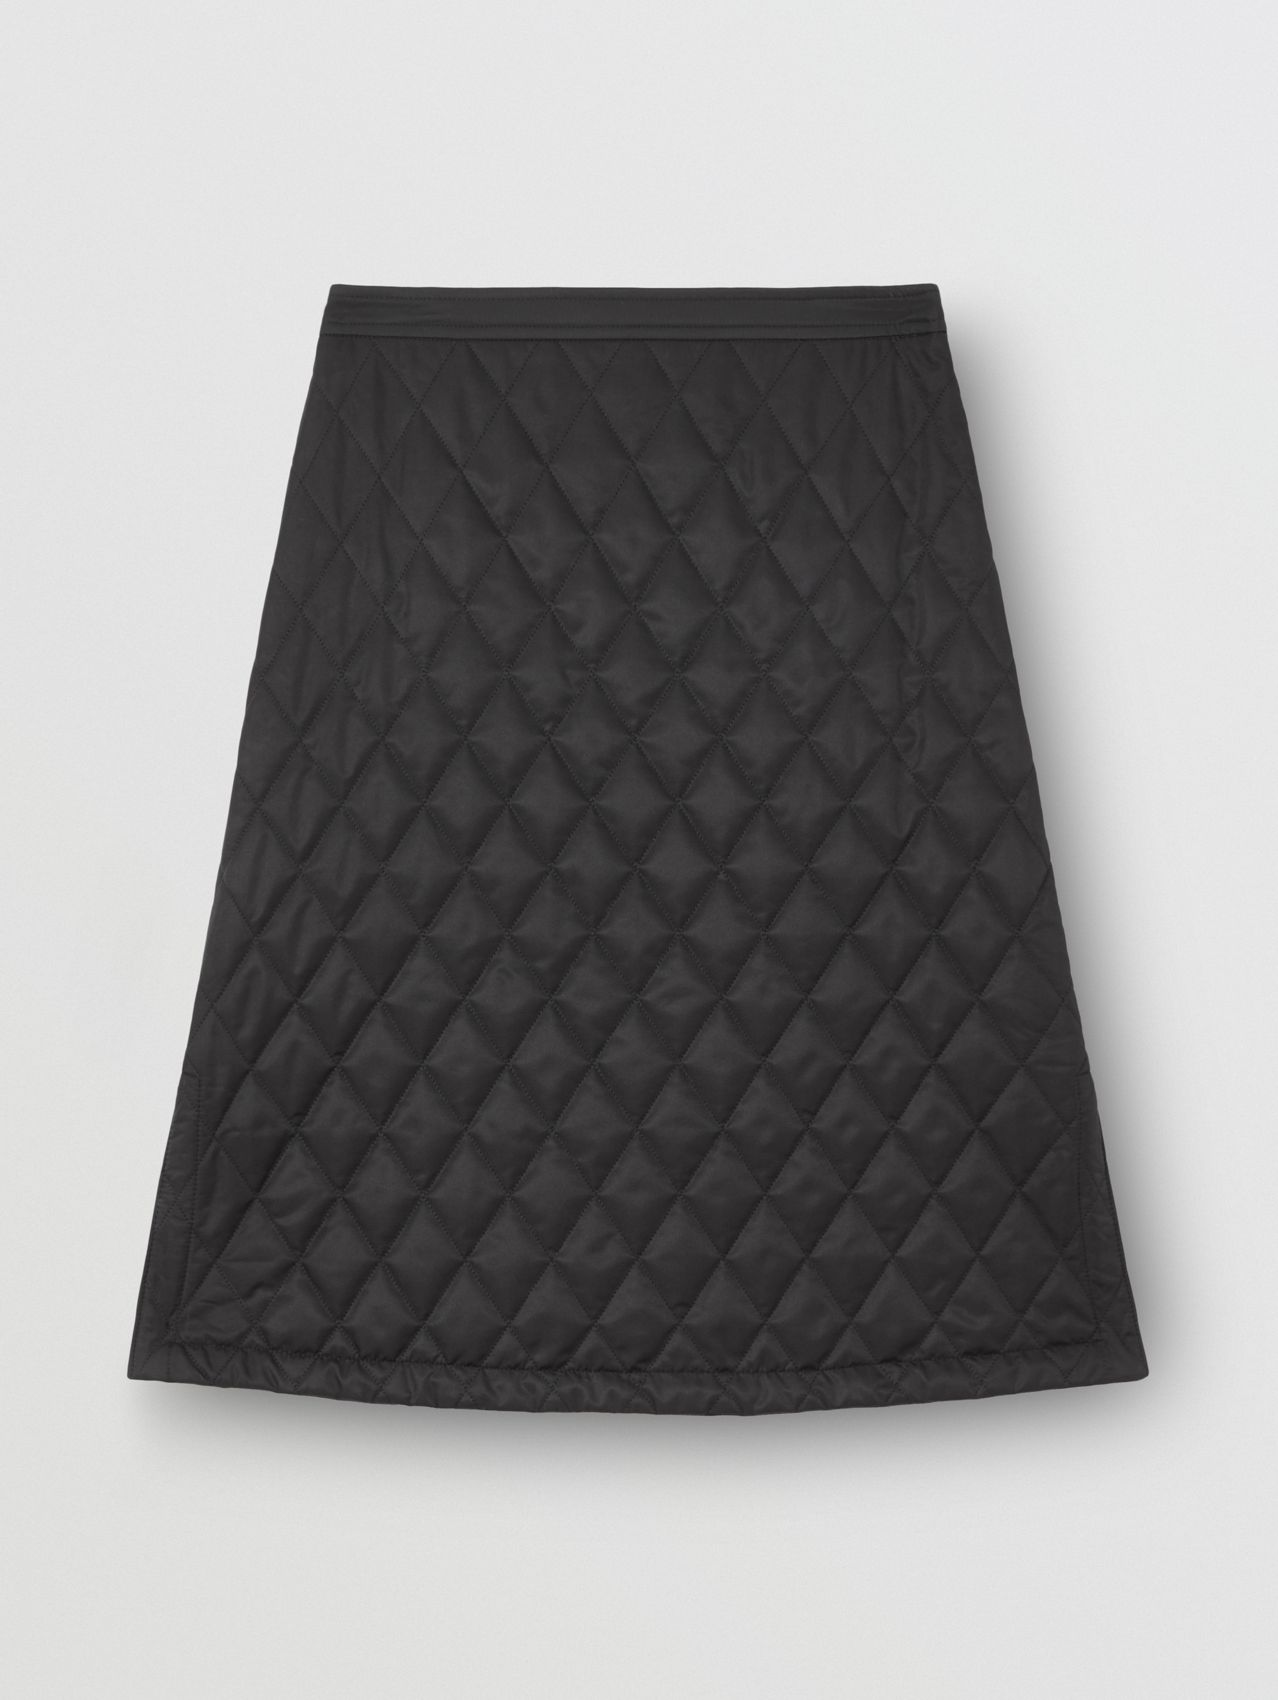 Diamond Quilted A-line Skirt in Black